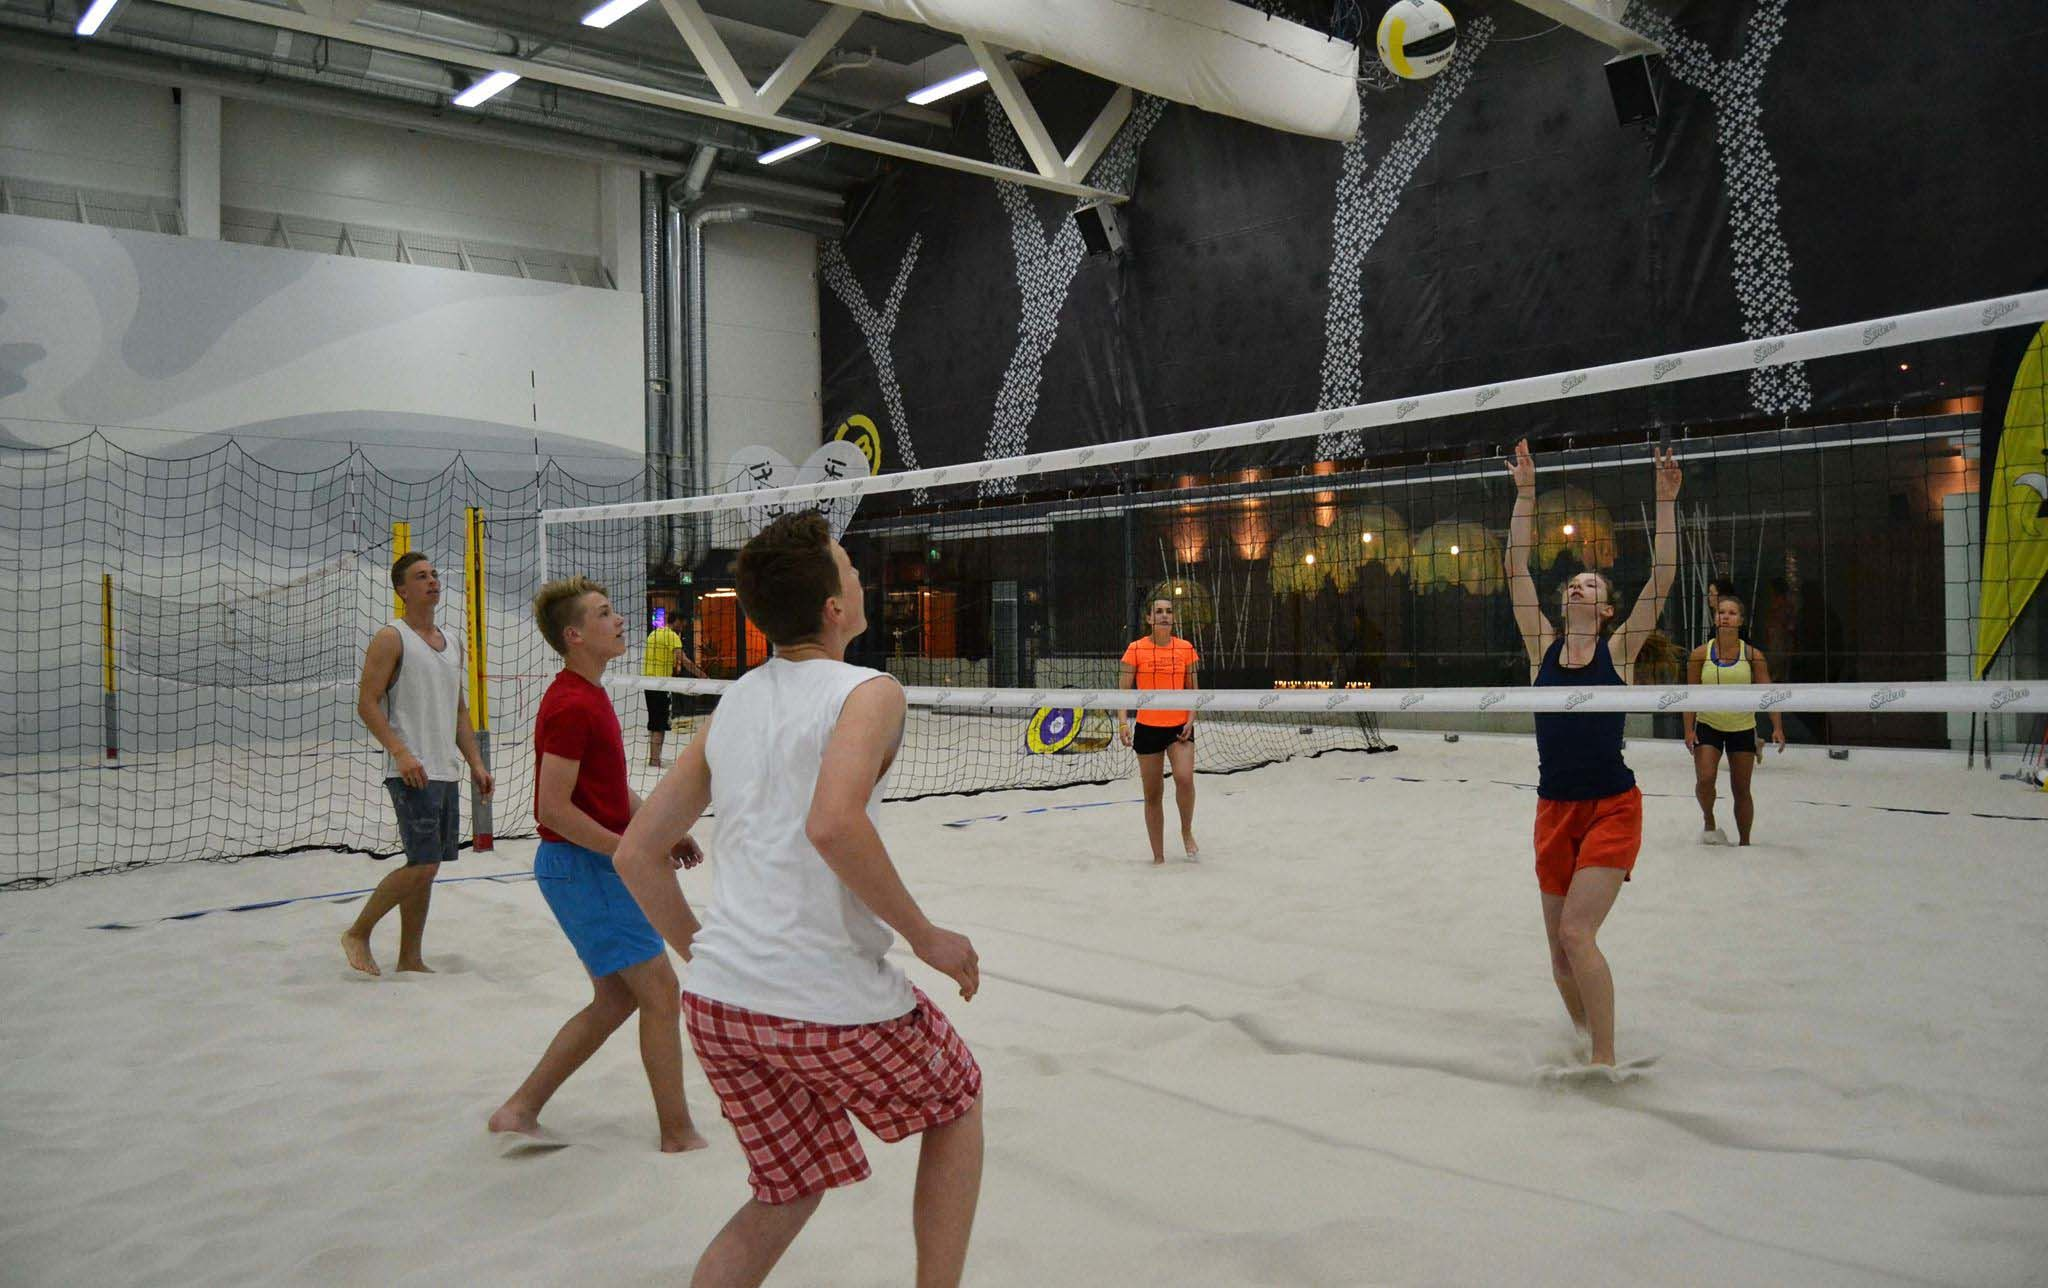 A Rainy Day In Helsinki What To Do In Salmisaari There Is An Indoor Sports Centre In Which You Can Pl Holidays In Finland Indoor Sports Online Travel Agency